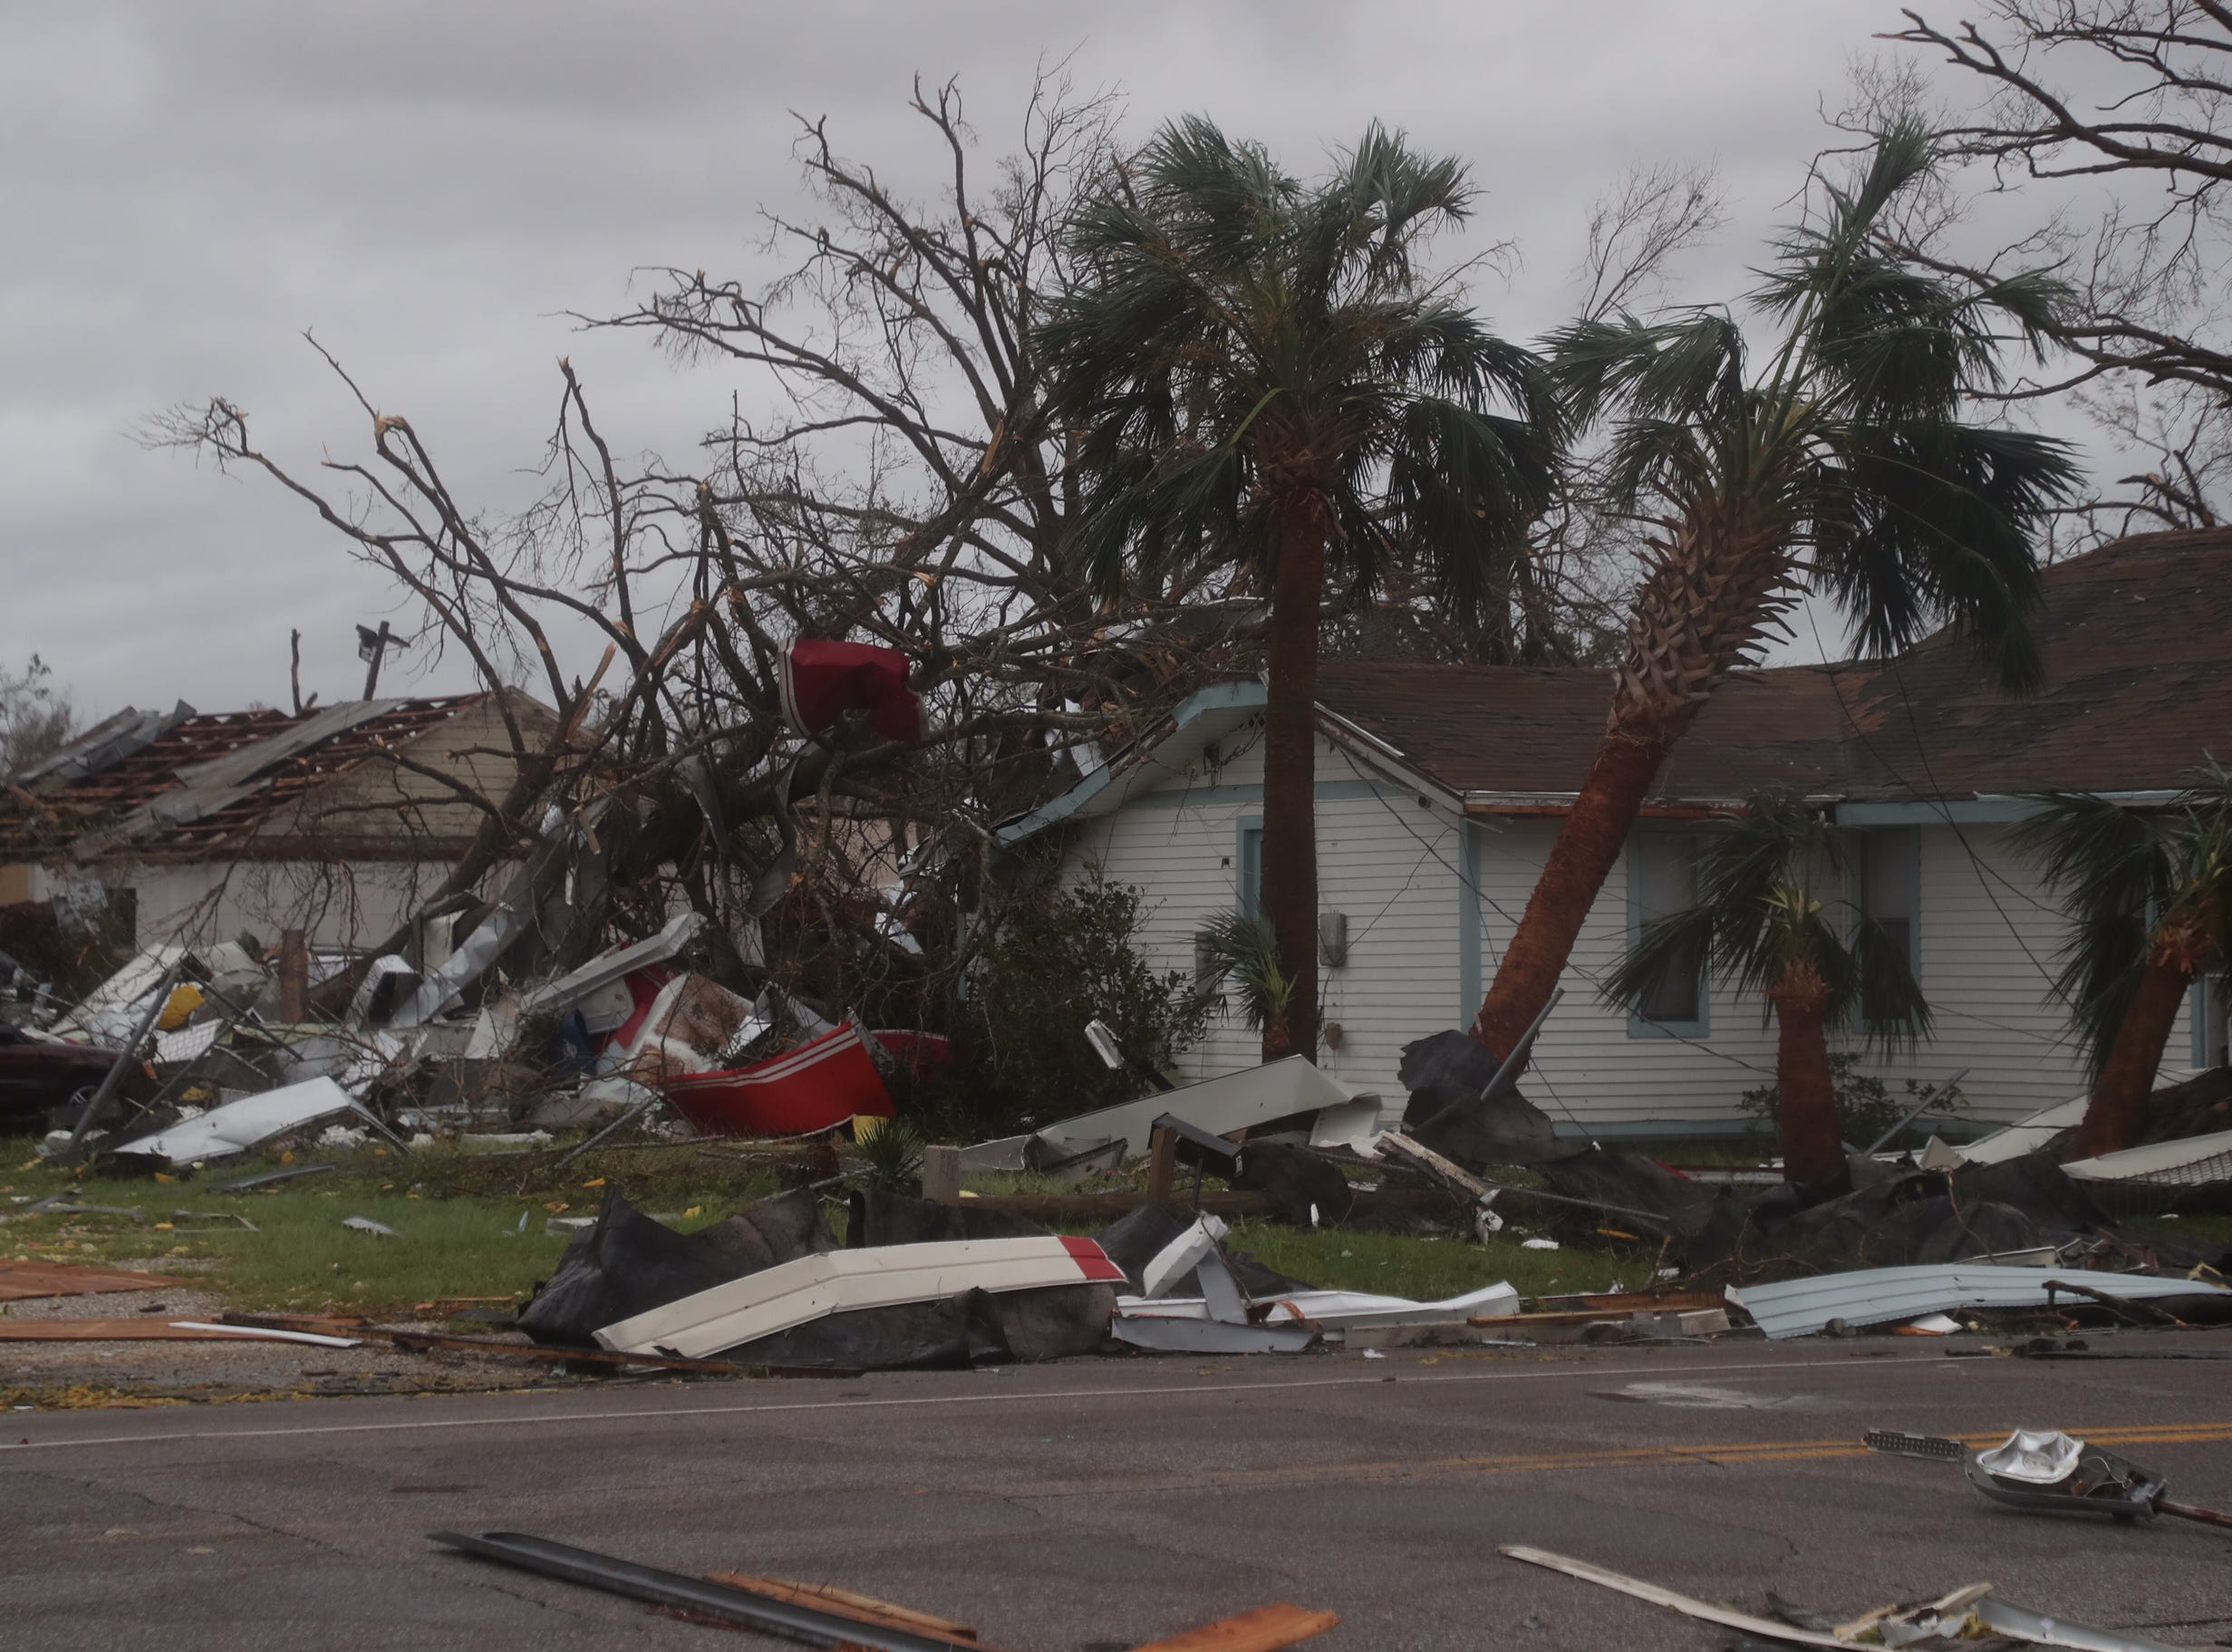 Damage from Hurricane Michael is seen in Panama City, Fla., Wednesday, Oct. 10, 2018.